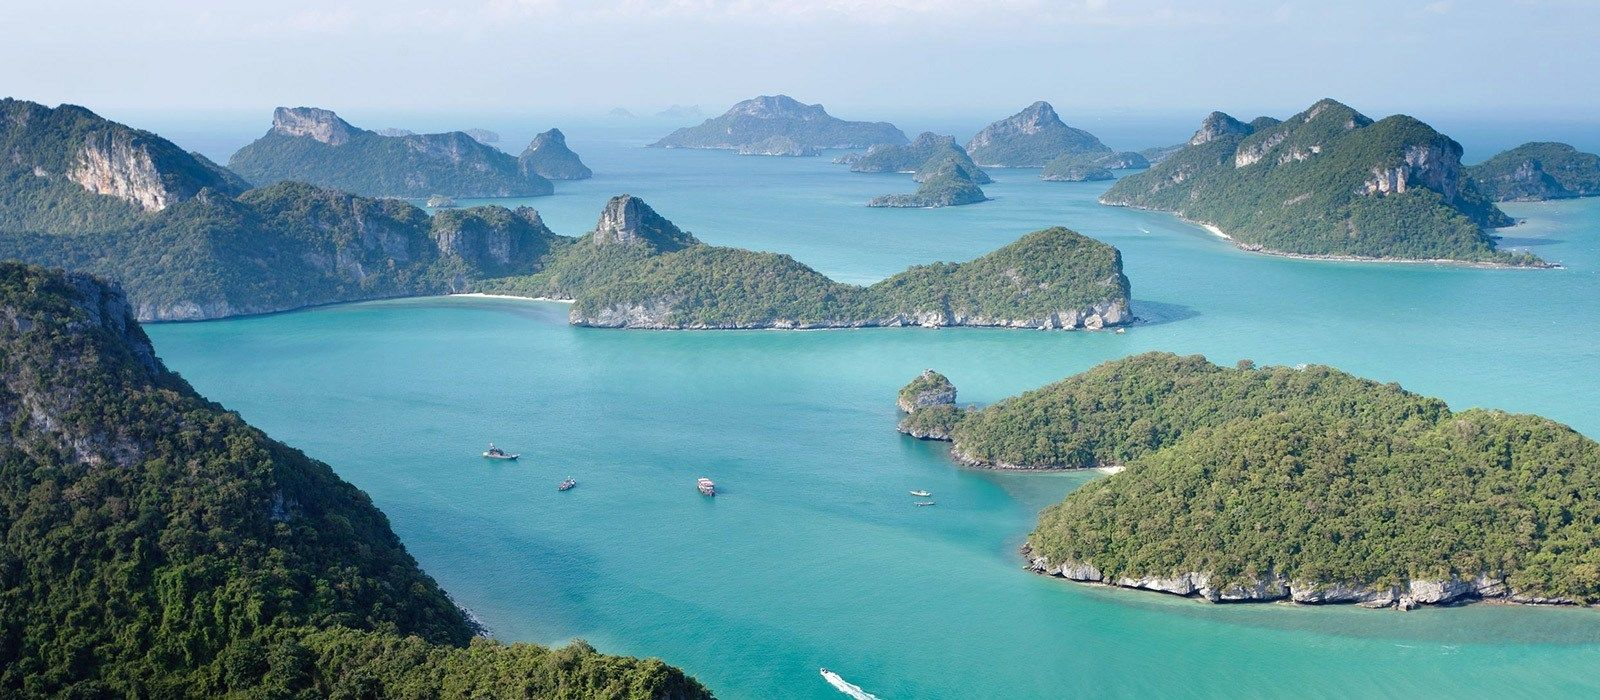 Exclusive Travel Tips for Your Destination Koh Samui in